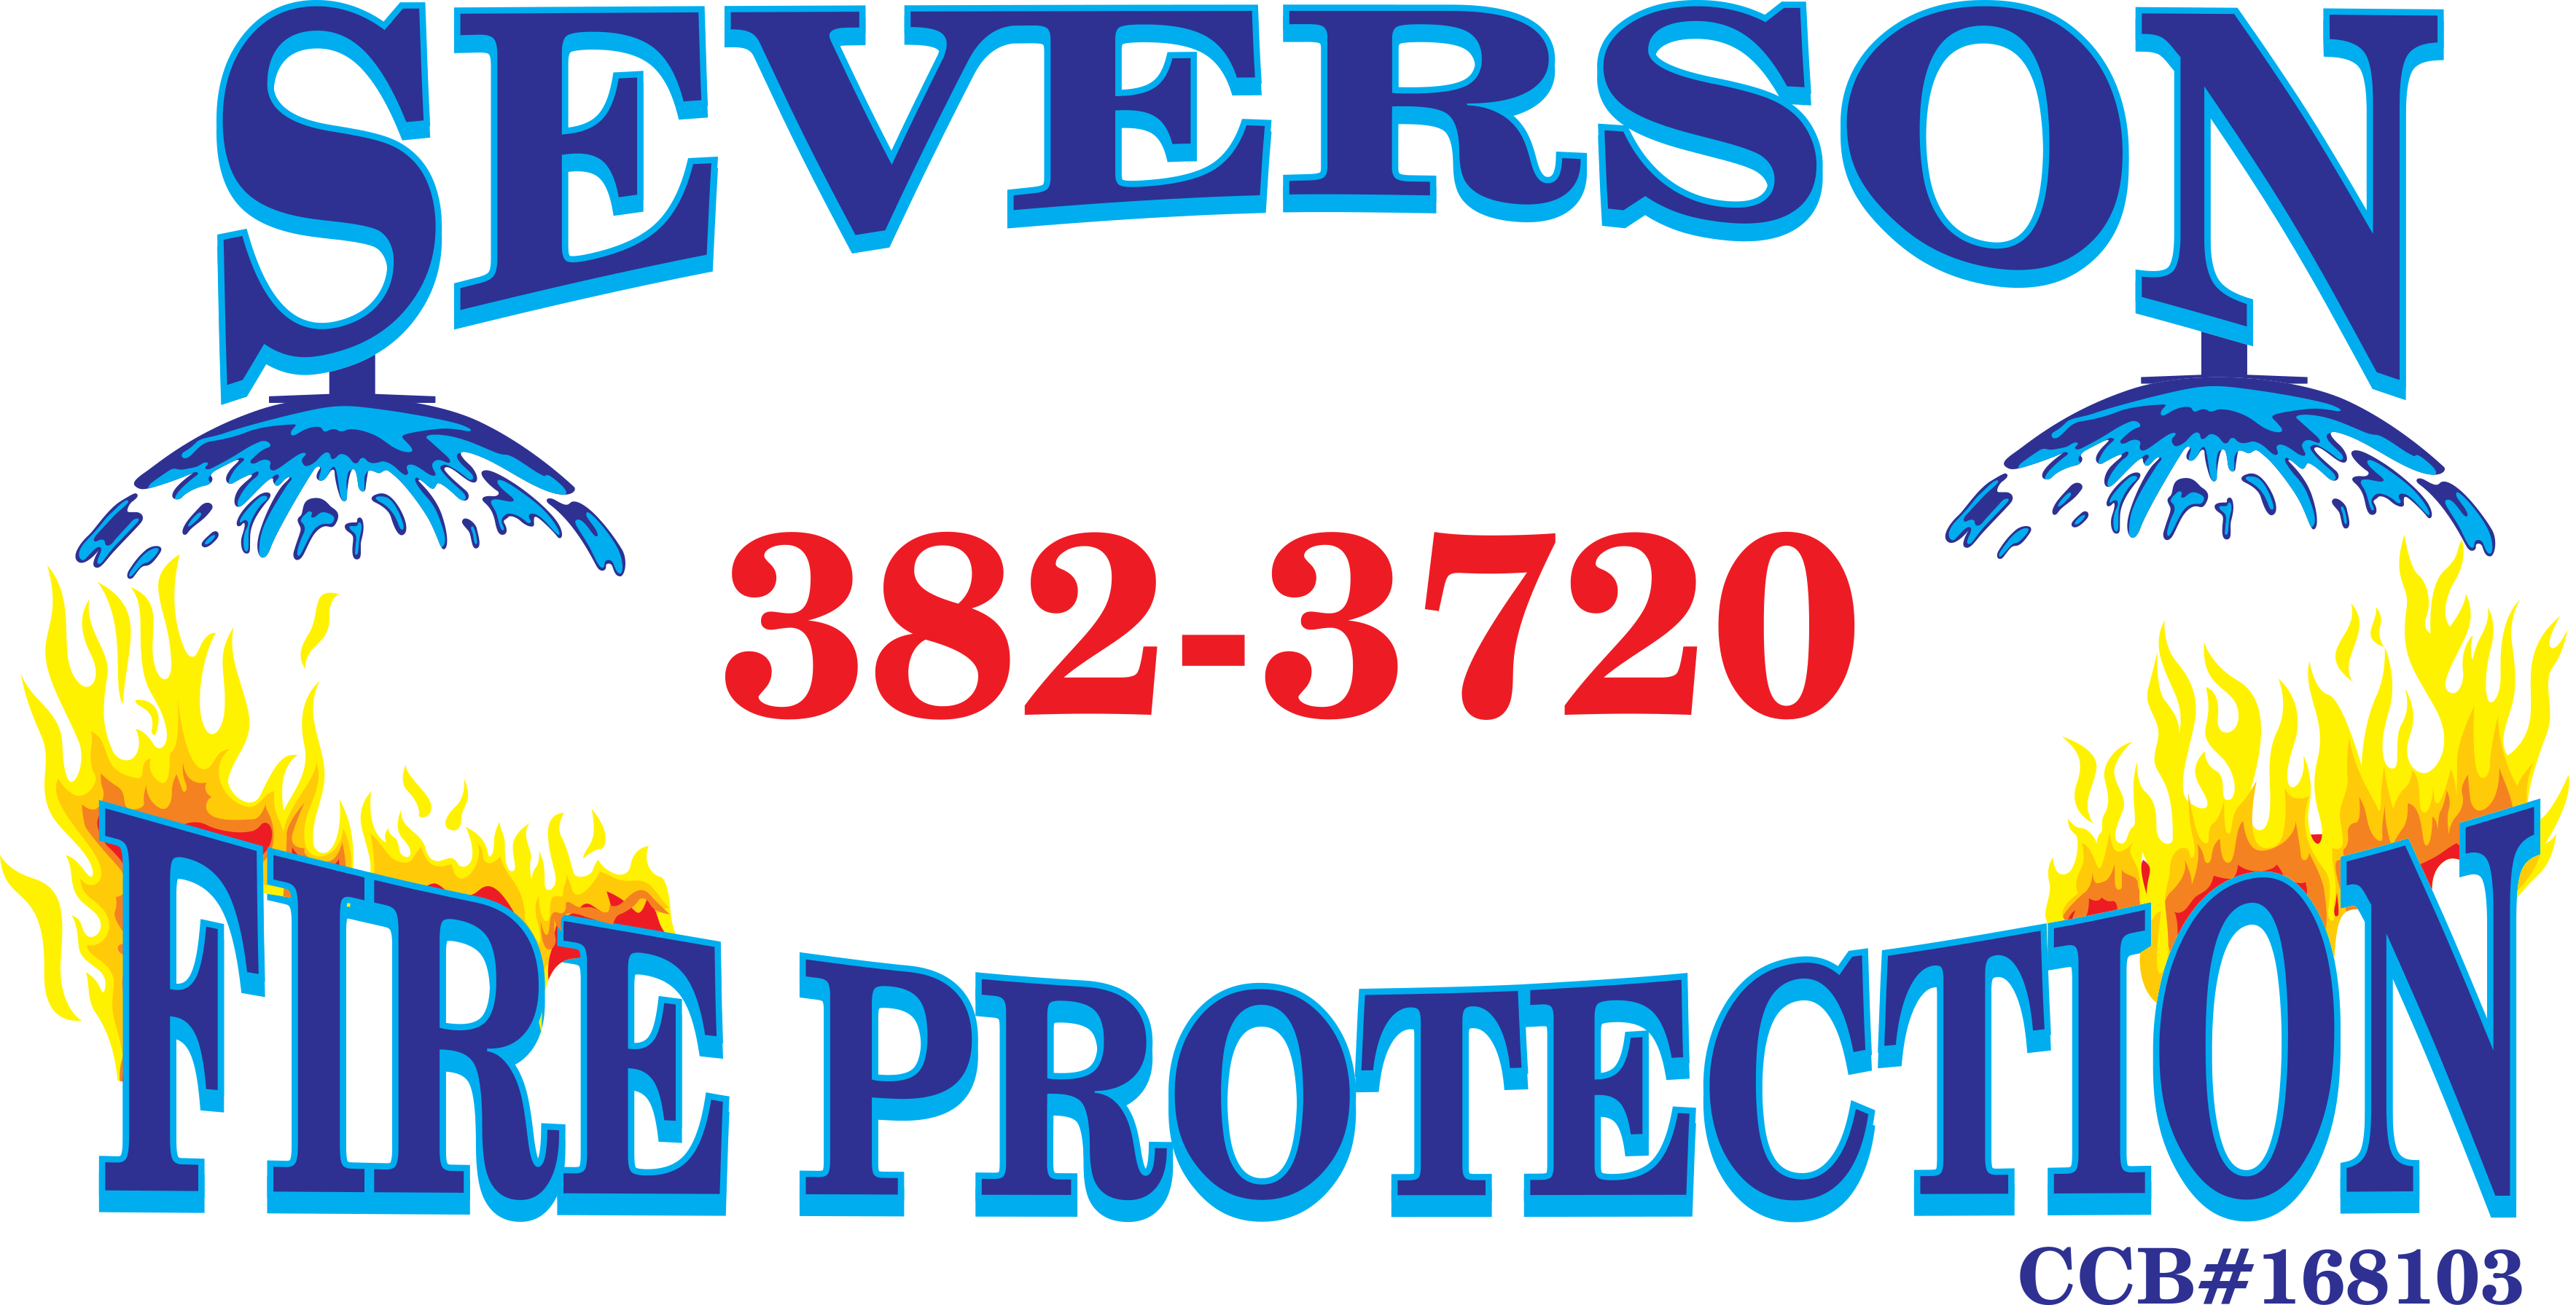 Severson Fire Protection